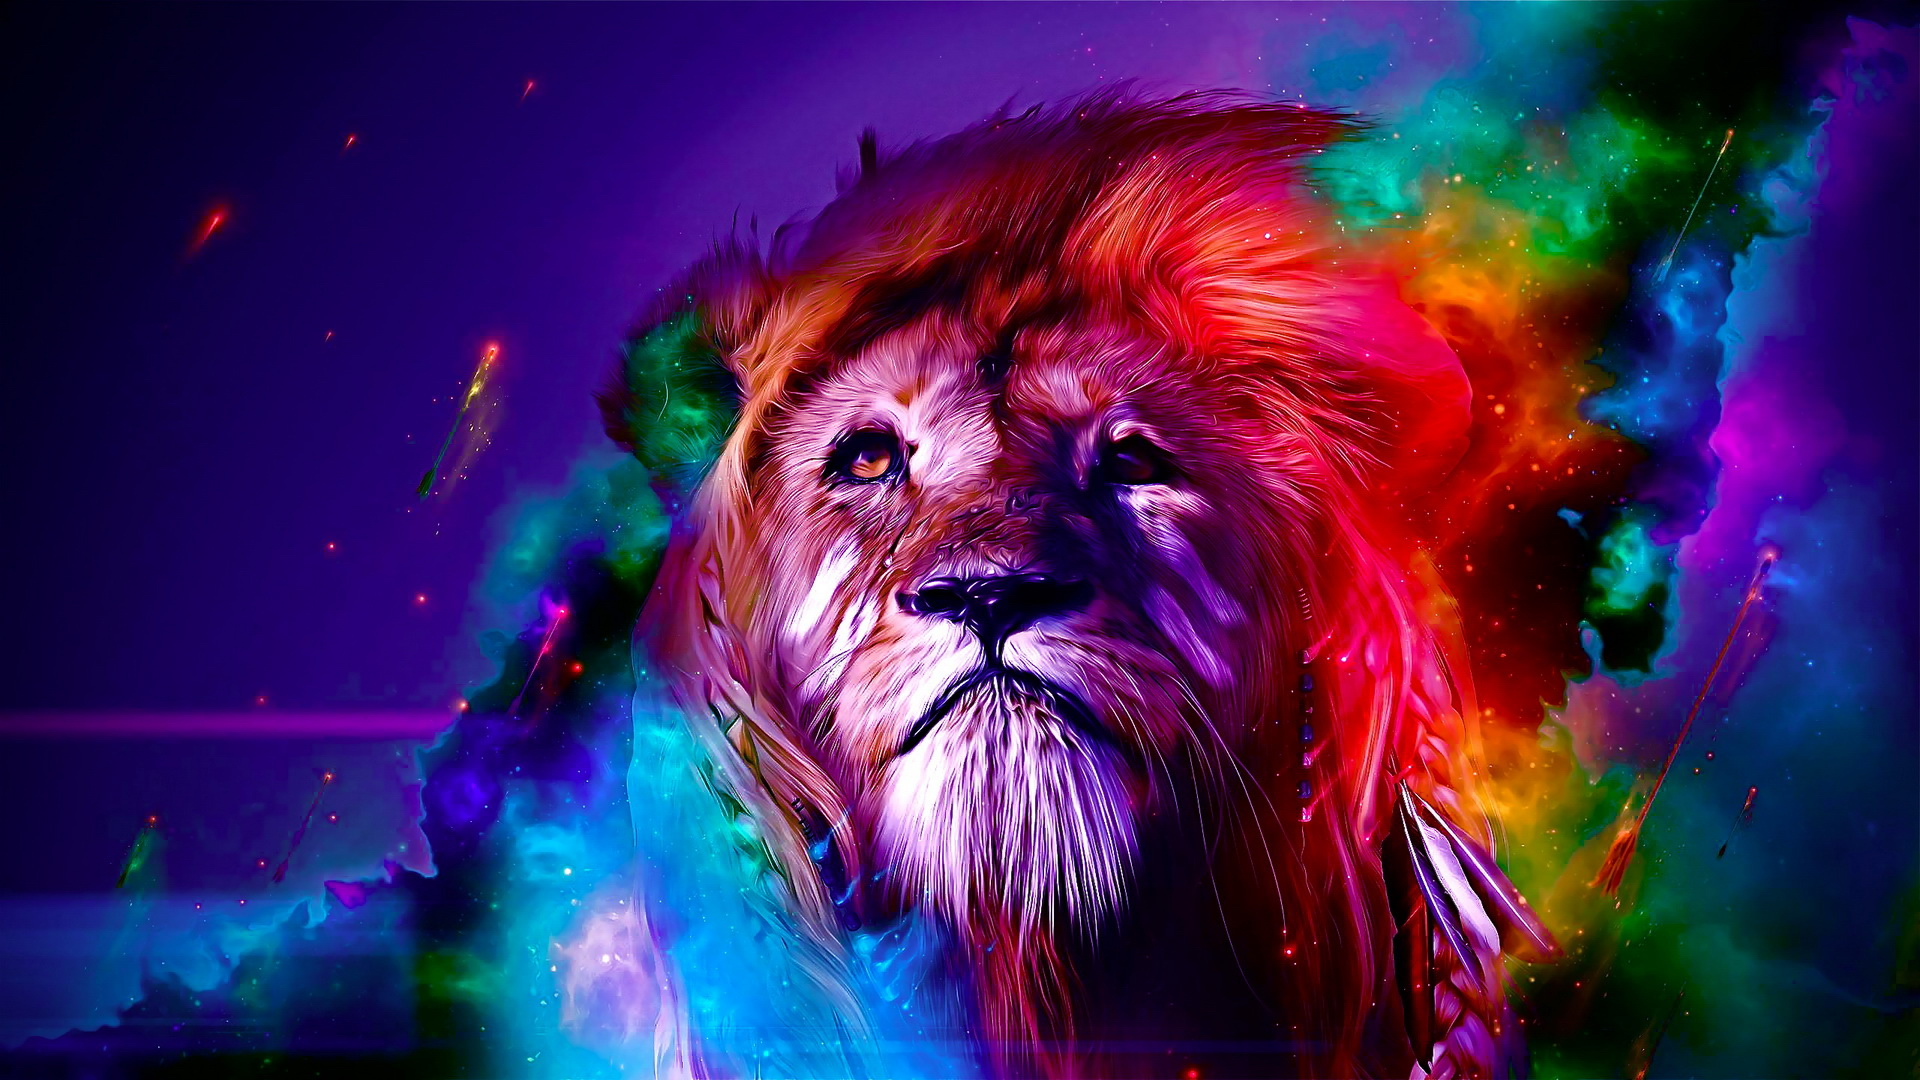 lion hd wallpapers 1024x768 - photo #31